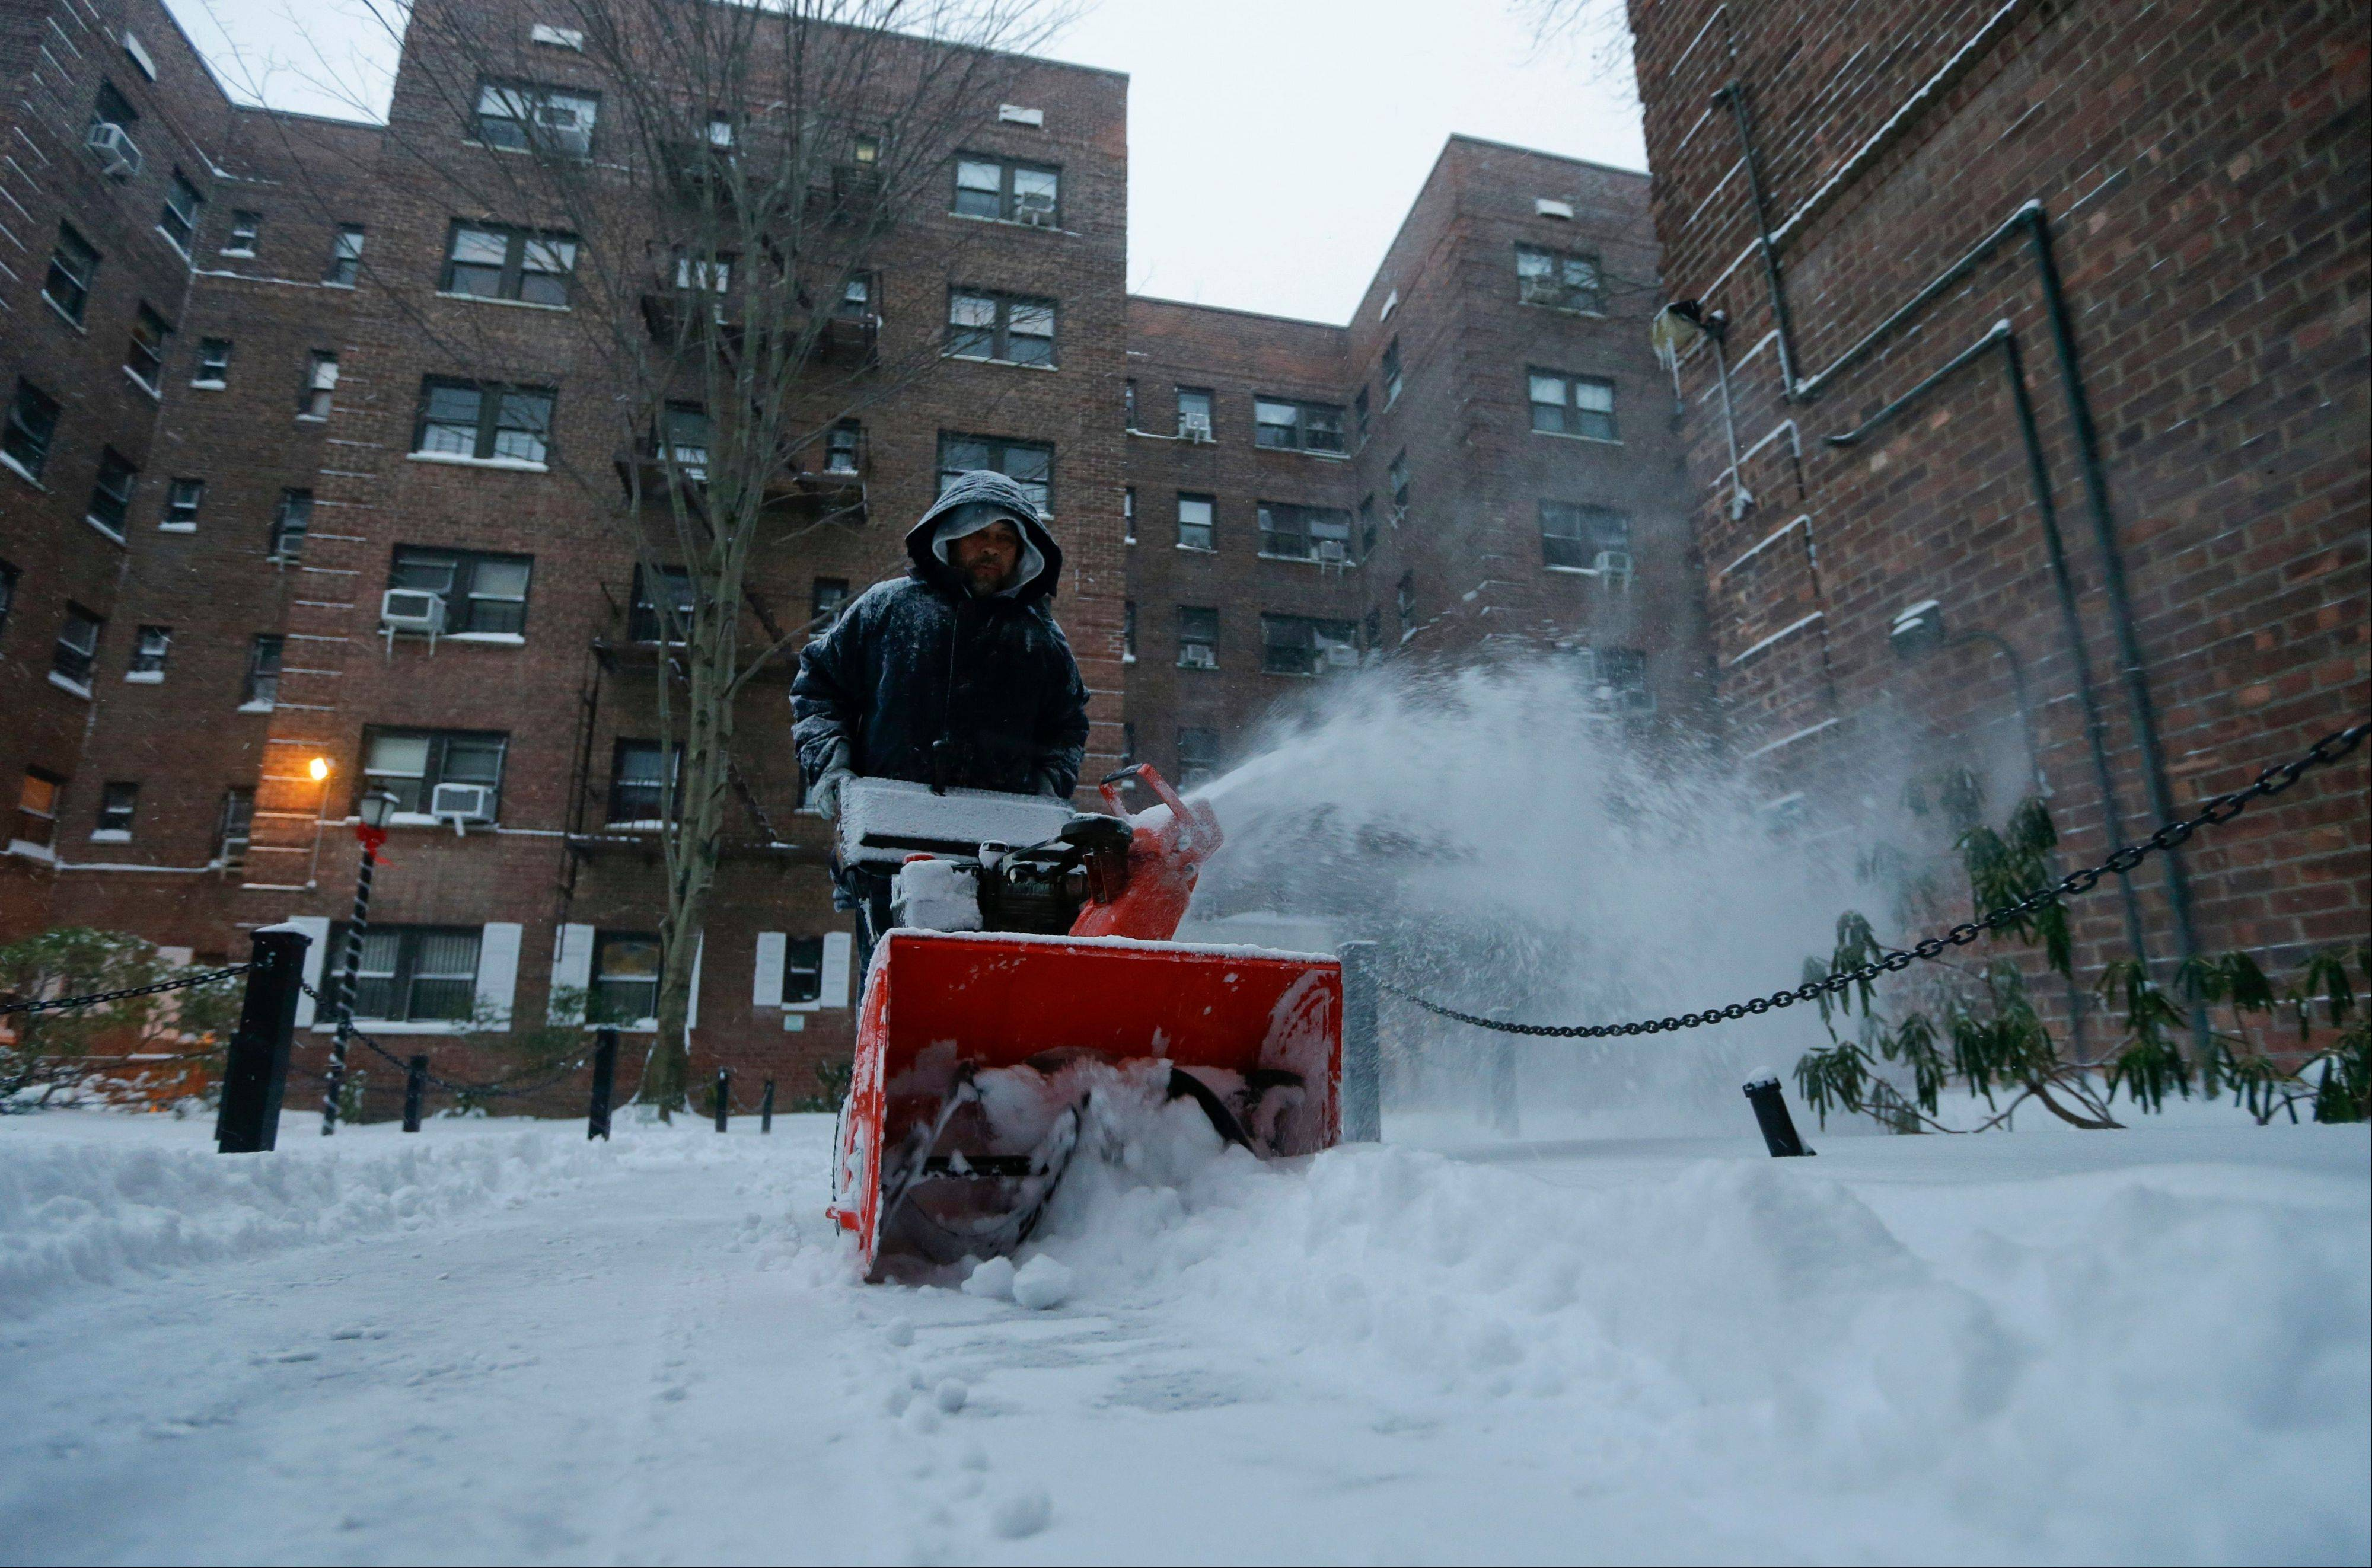 A man who did not wish to be identified uses a snowblower to clear a path near an apartment complex Friday, Jan. 3, 2014, in the Queens borough of New York. The New York City Office of Emergency Management issued a hazardous travel advisory into Friday, warning that roads likely would be icy and snow would continue to drift.